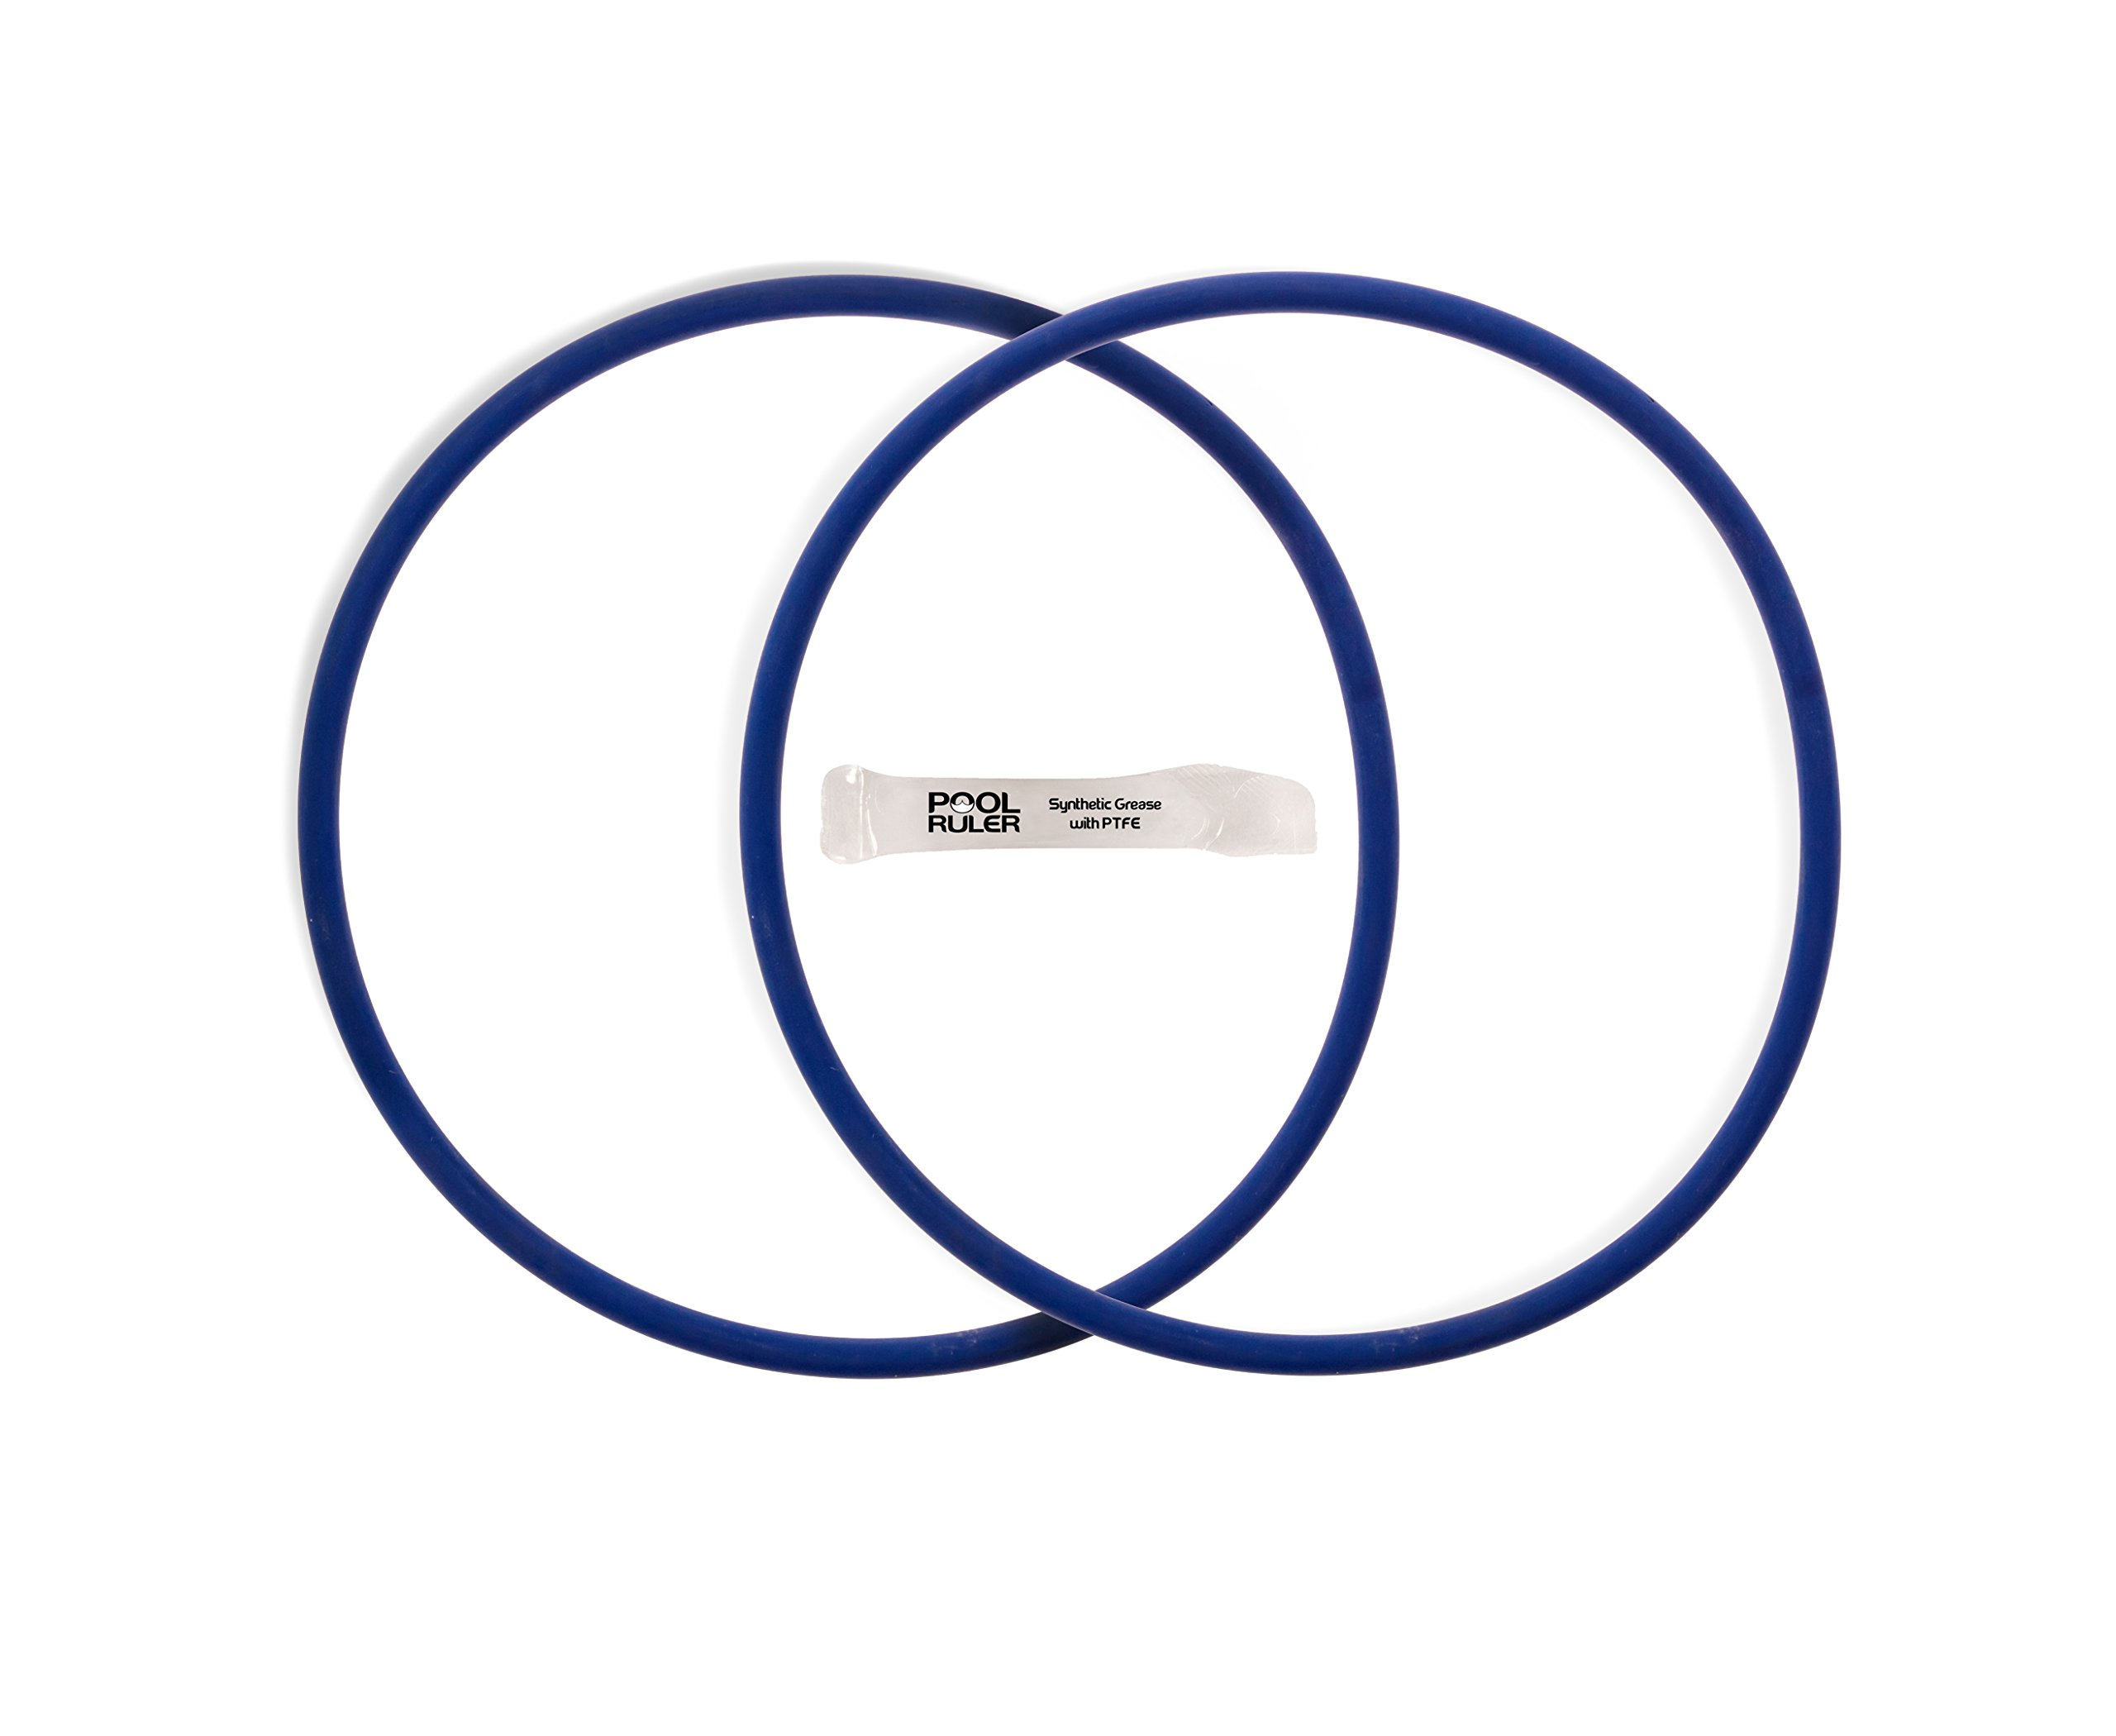 Pool Ruler CLX200K Chlorine Resistant VITON O-Ring TWO Pack + LUBRICANT for Hayward Pool Chlorinator Chemical Feeder Lid CL200 & CL220